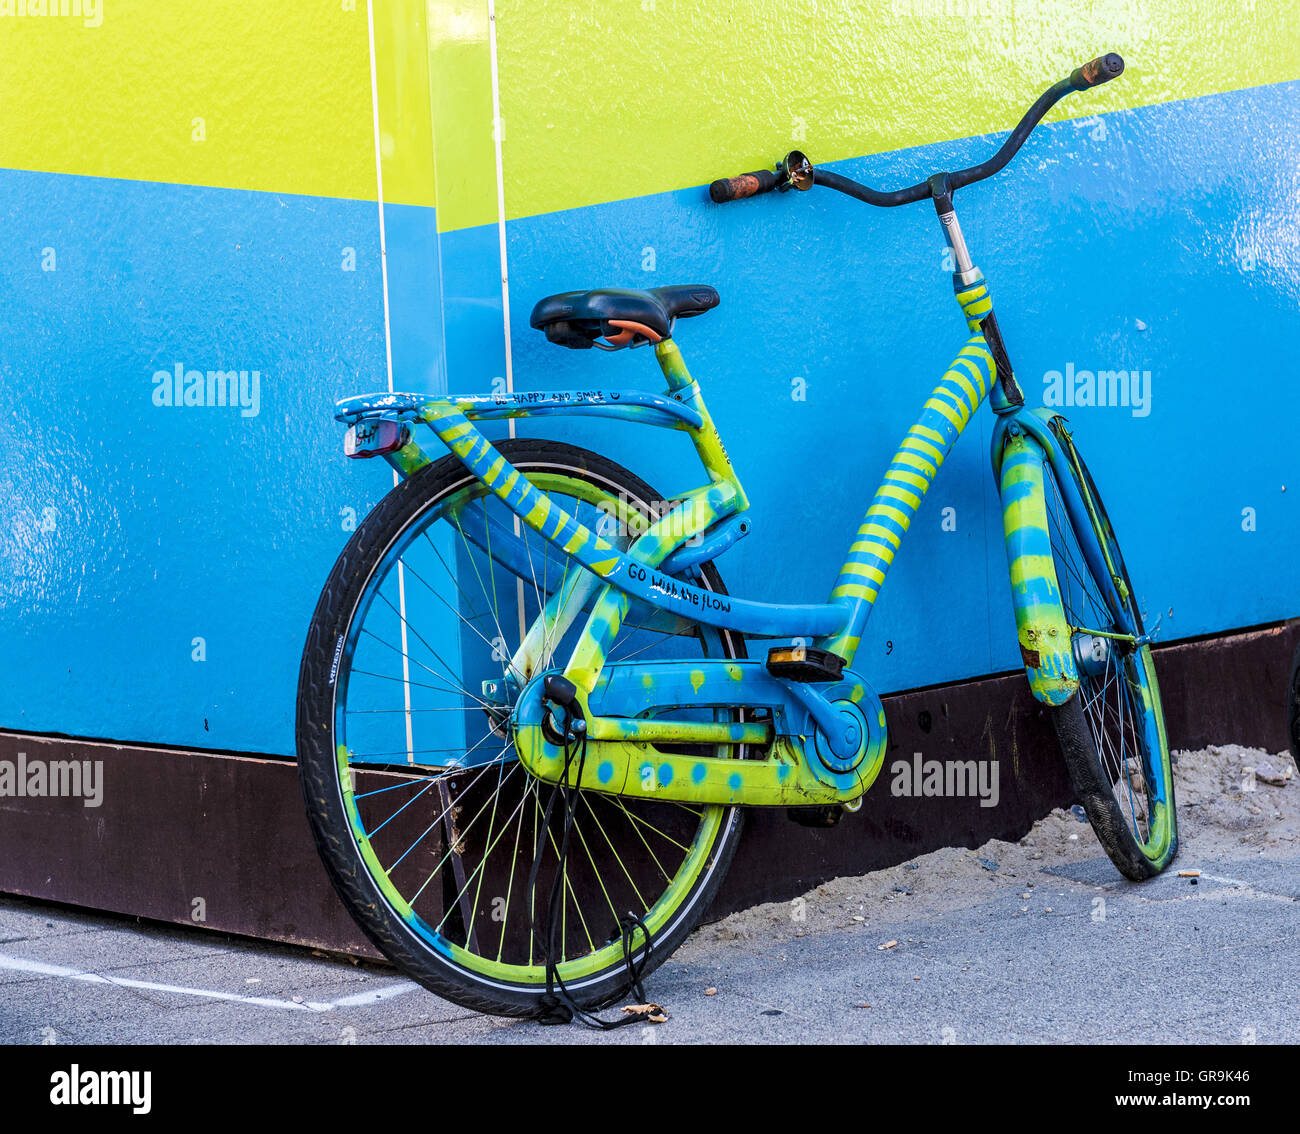 Bluegreen Bycycle Before Bluegreen Wall - Stock Image